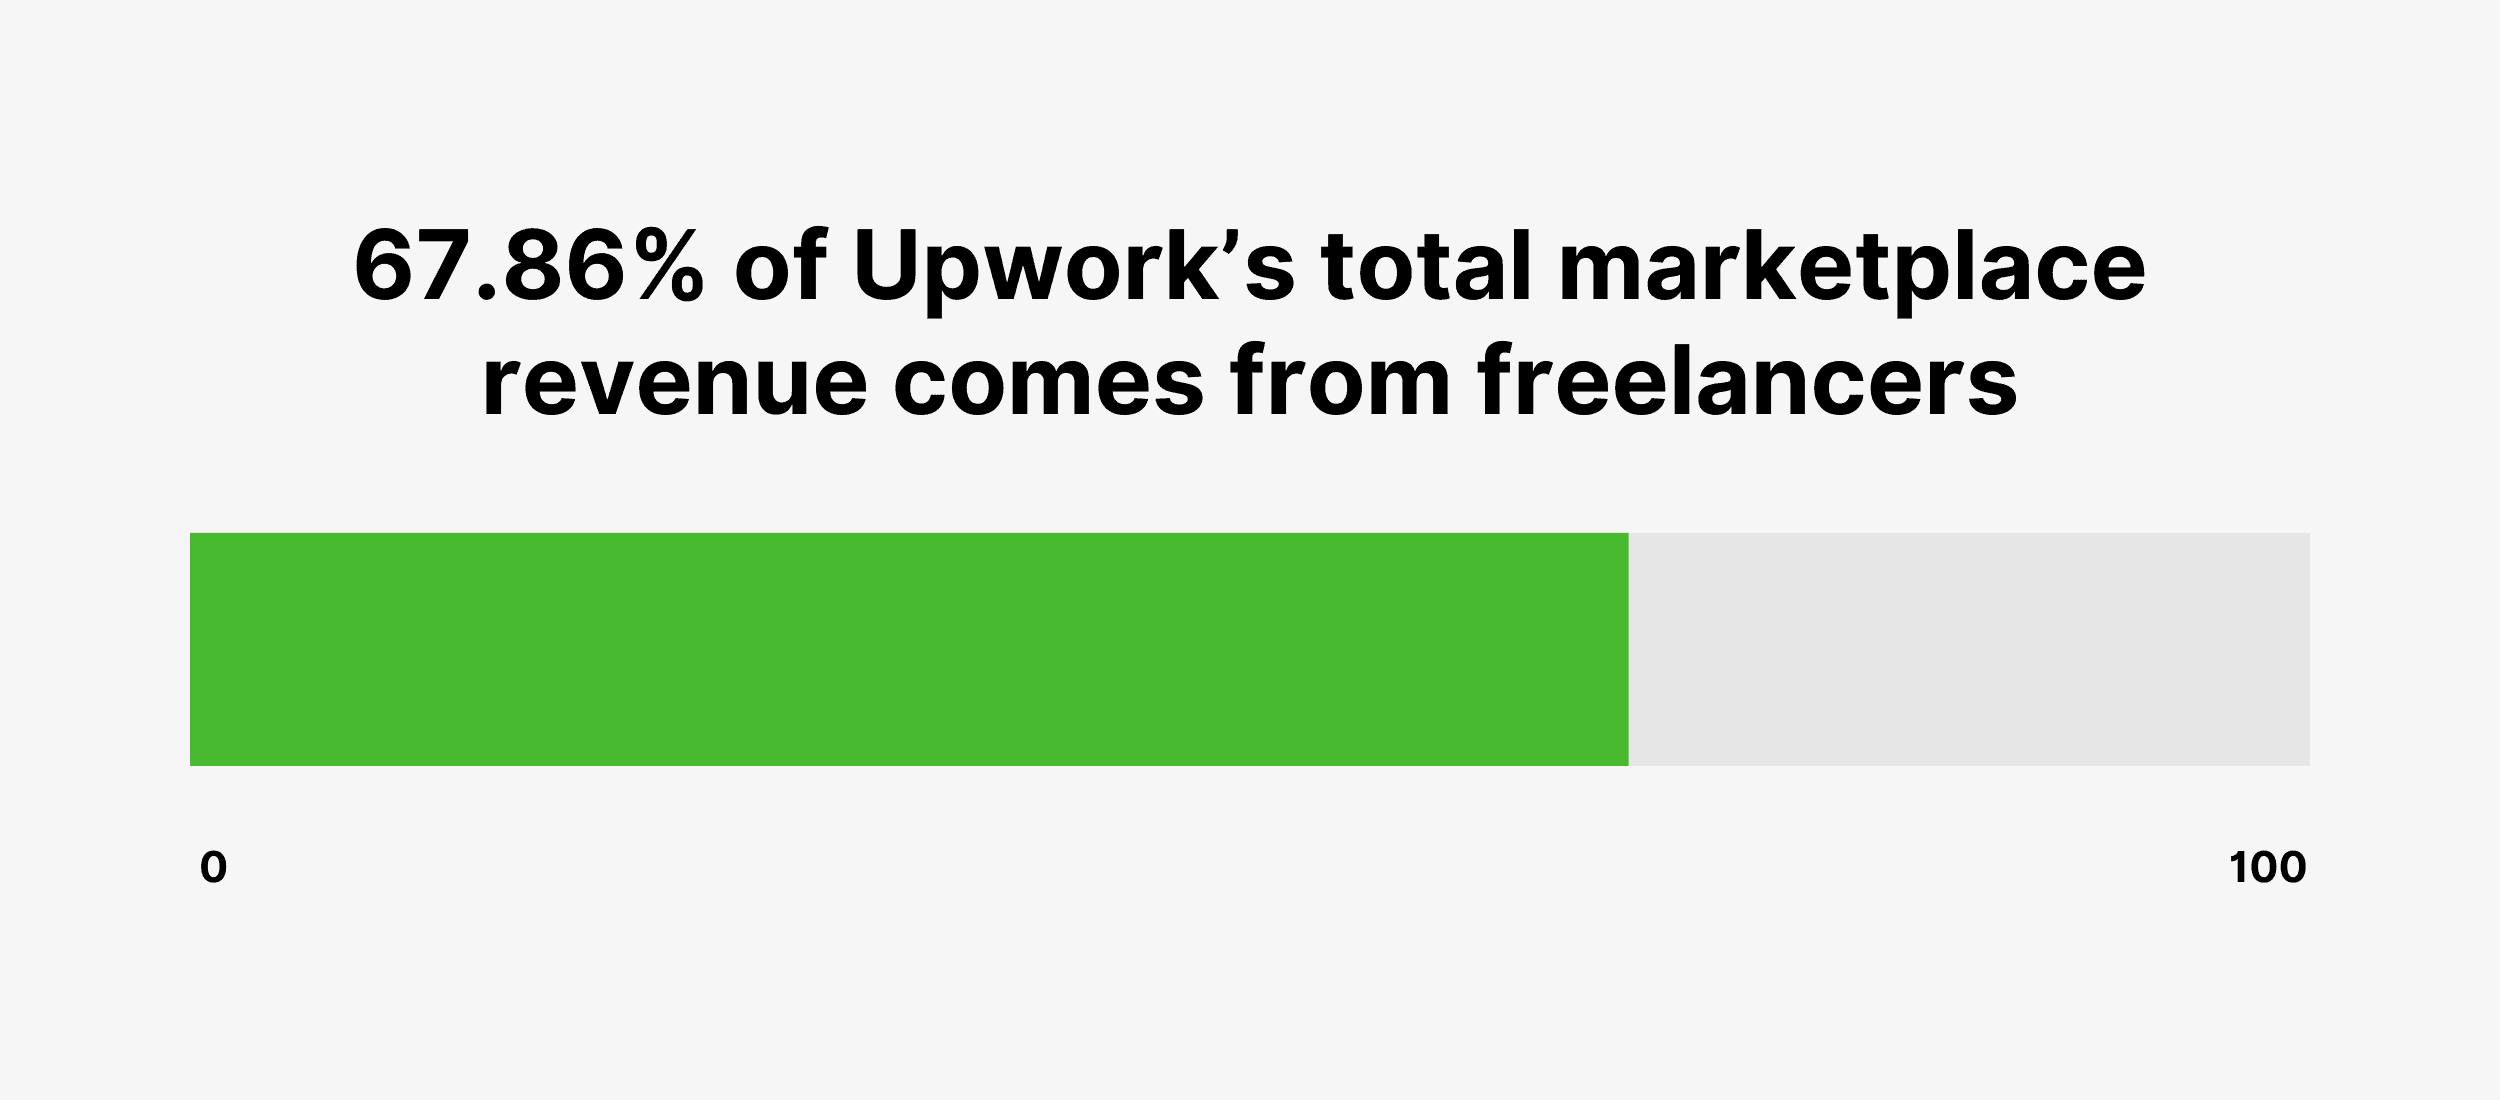 67.86% of Upwork's total marketplace revenue comes from freelancers